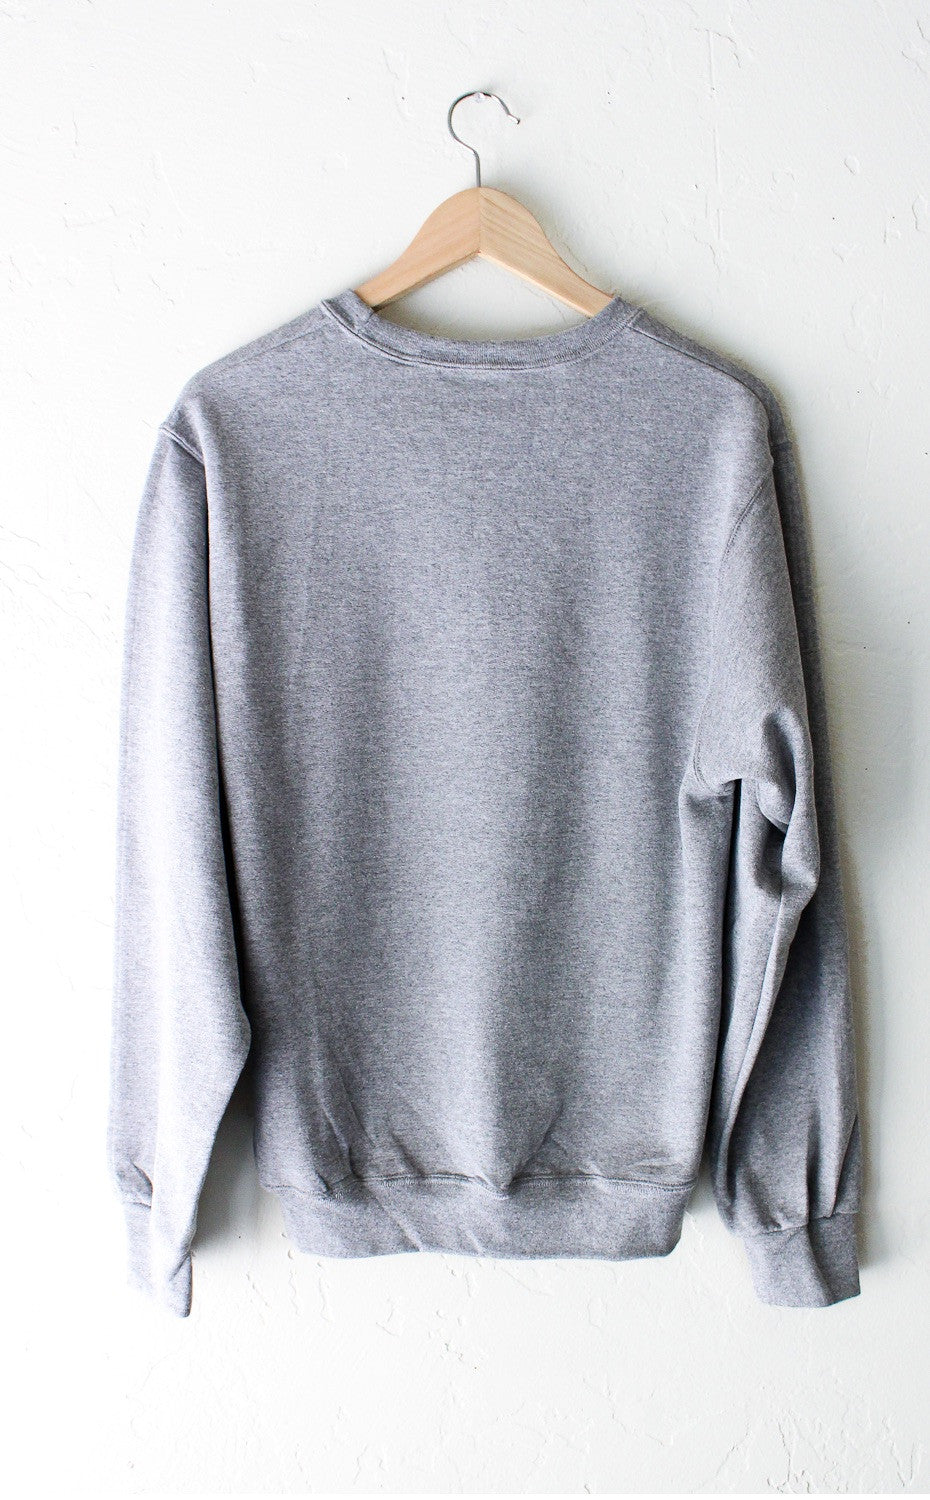 NYCT Clothing California Sweater - Grey